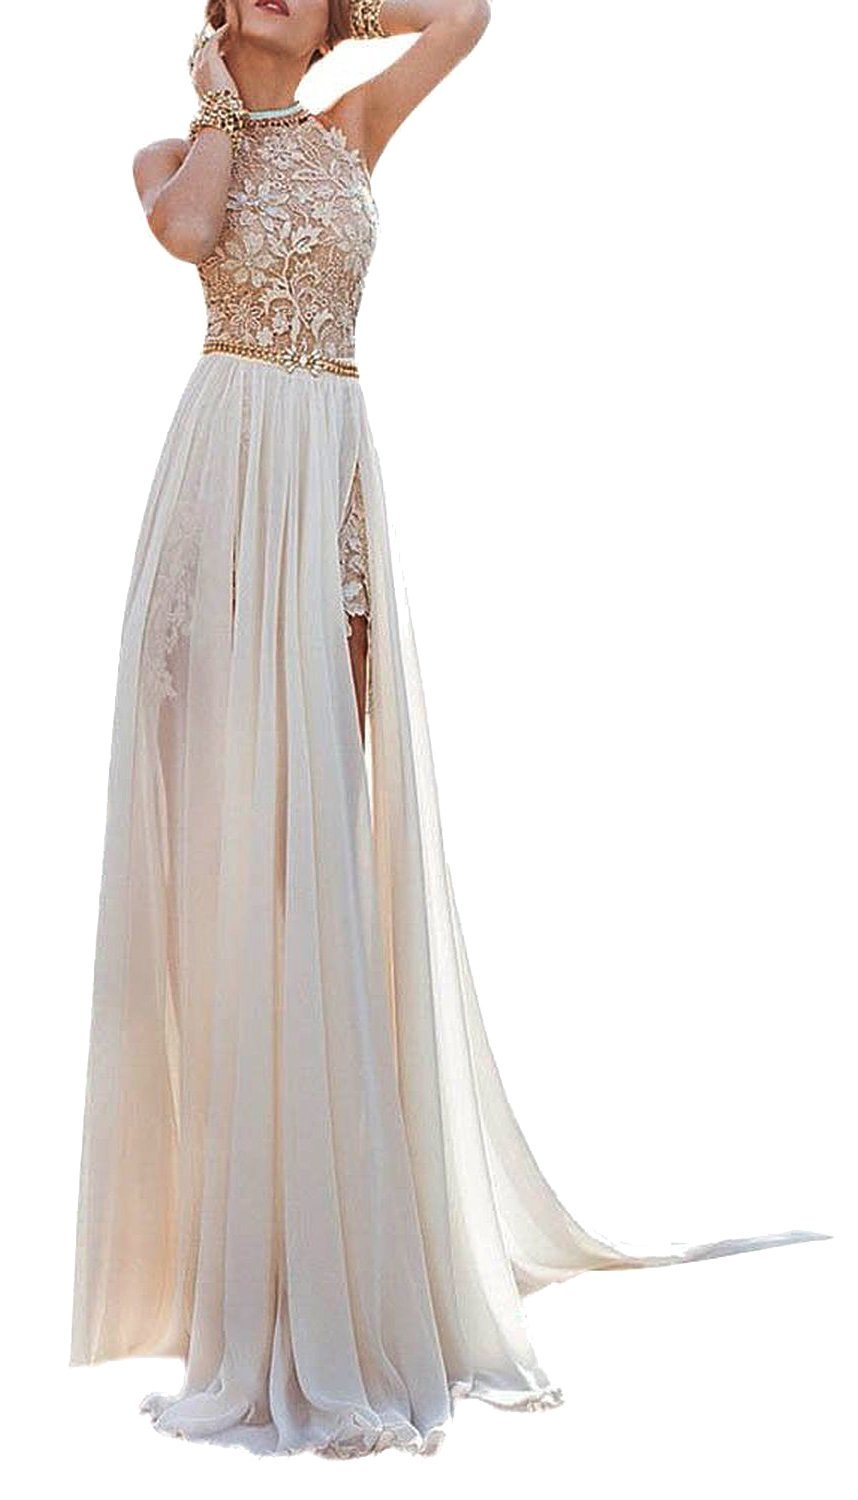 Long Evening Dresses Amazon - Formal Dresses